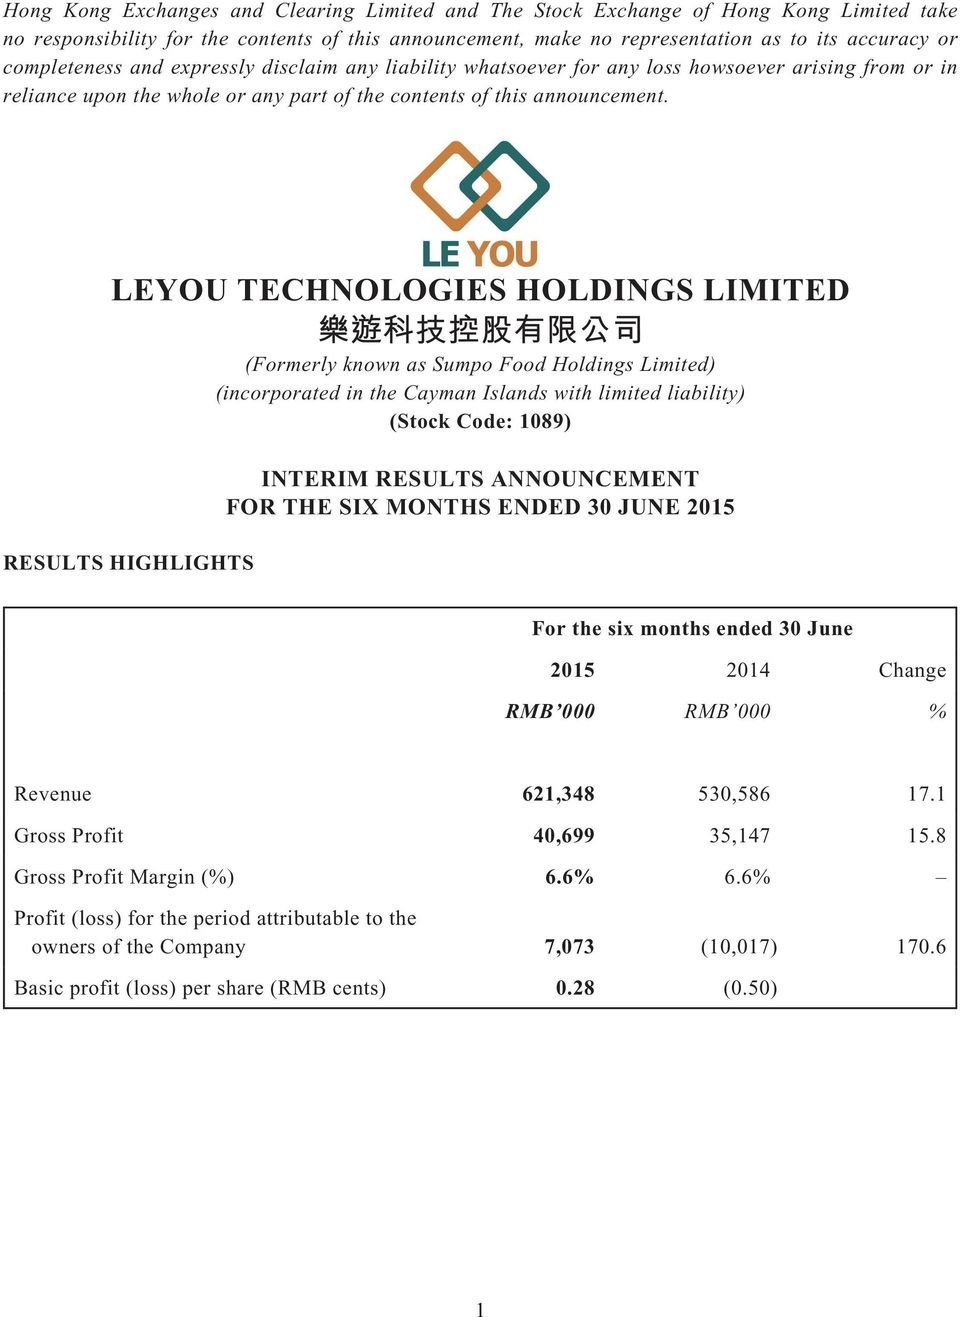 LEYOU TECHNOLOGIES HOLDINGS LIMITED (Formerly known as Sumpo Food Holdings Limited) (incorporated in the Cayman Islands with limited liability) (Stock Code: 1089) RESULTS HIGHLIGHTS INTERIM RESULTS